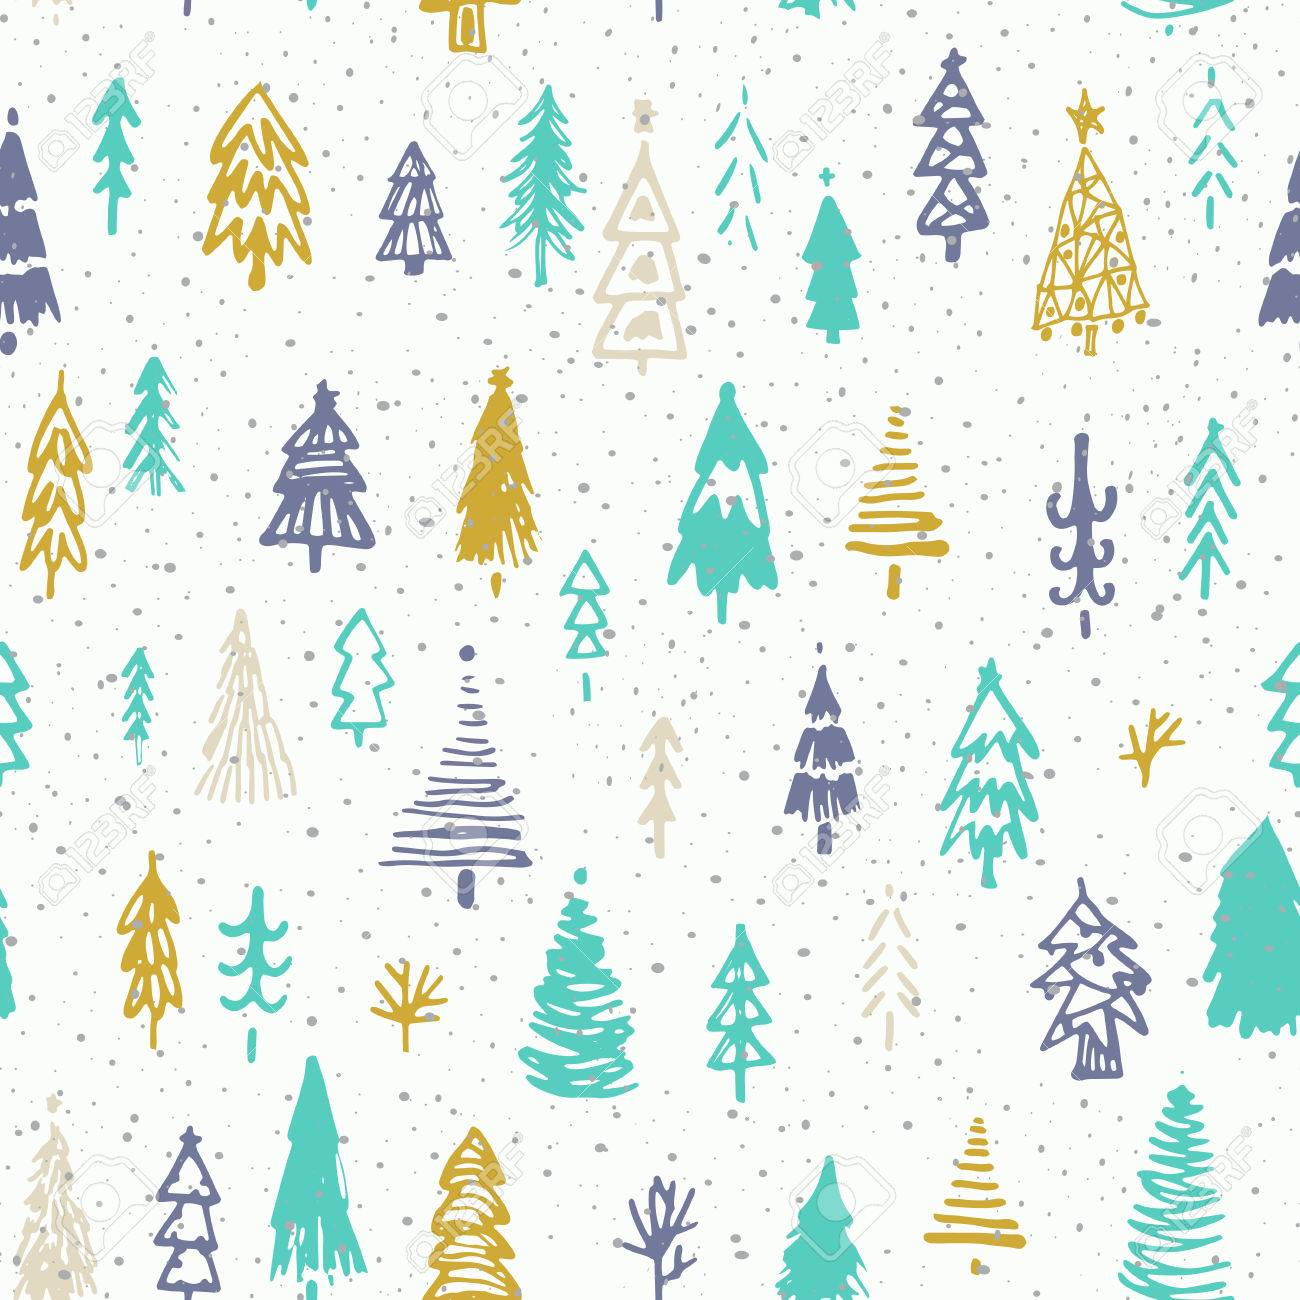 1300x1300 - Christmas Trees Backgrounds 27